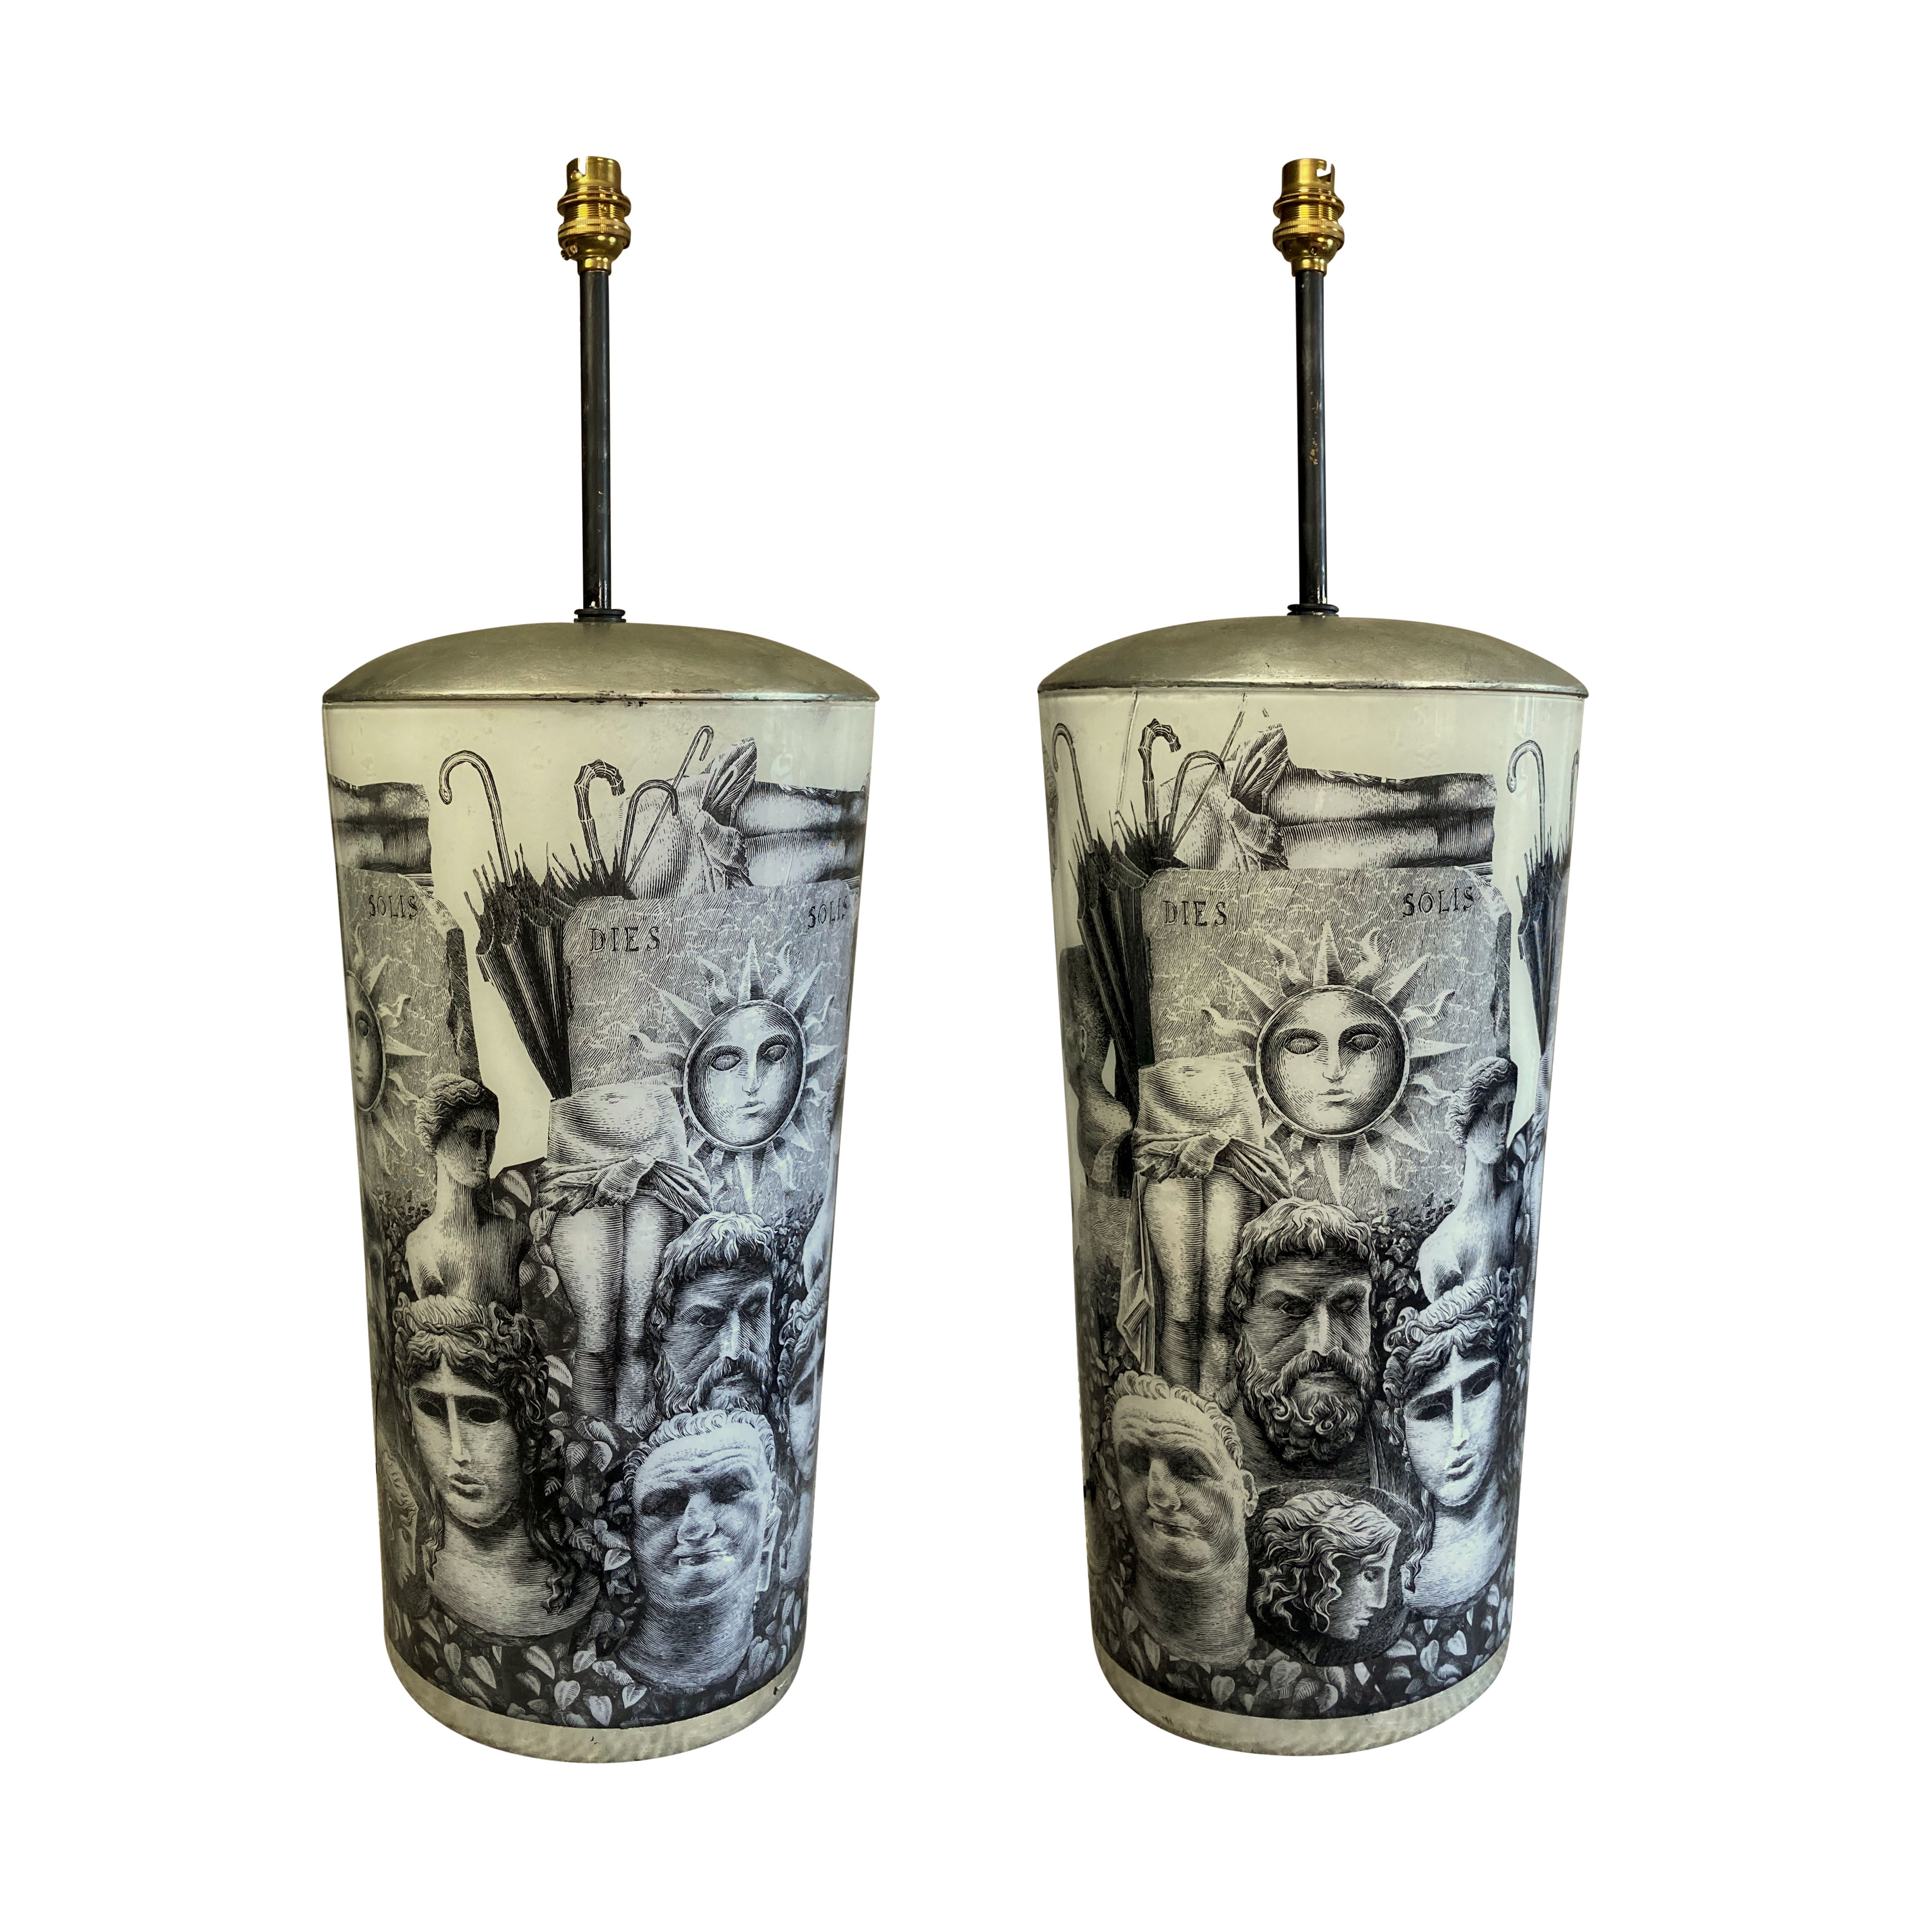 A PAIR OF LARGE EGLOMISE LAMPS IN THE MANNER OF FORNASETTI